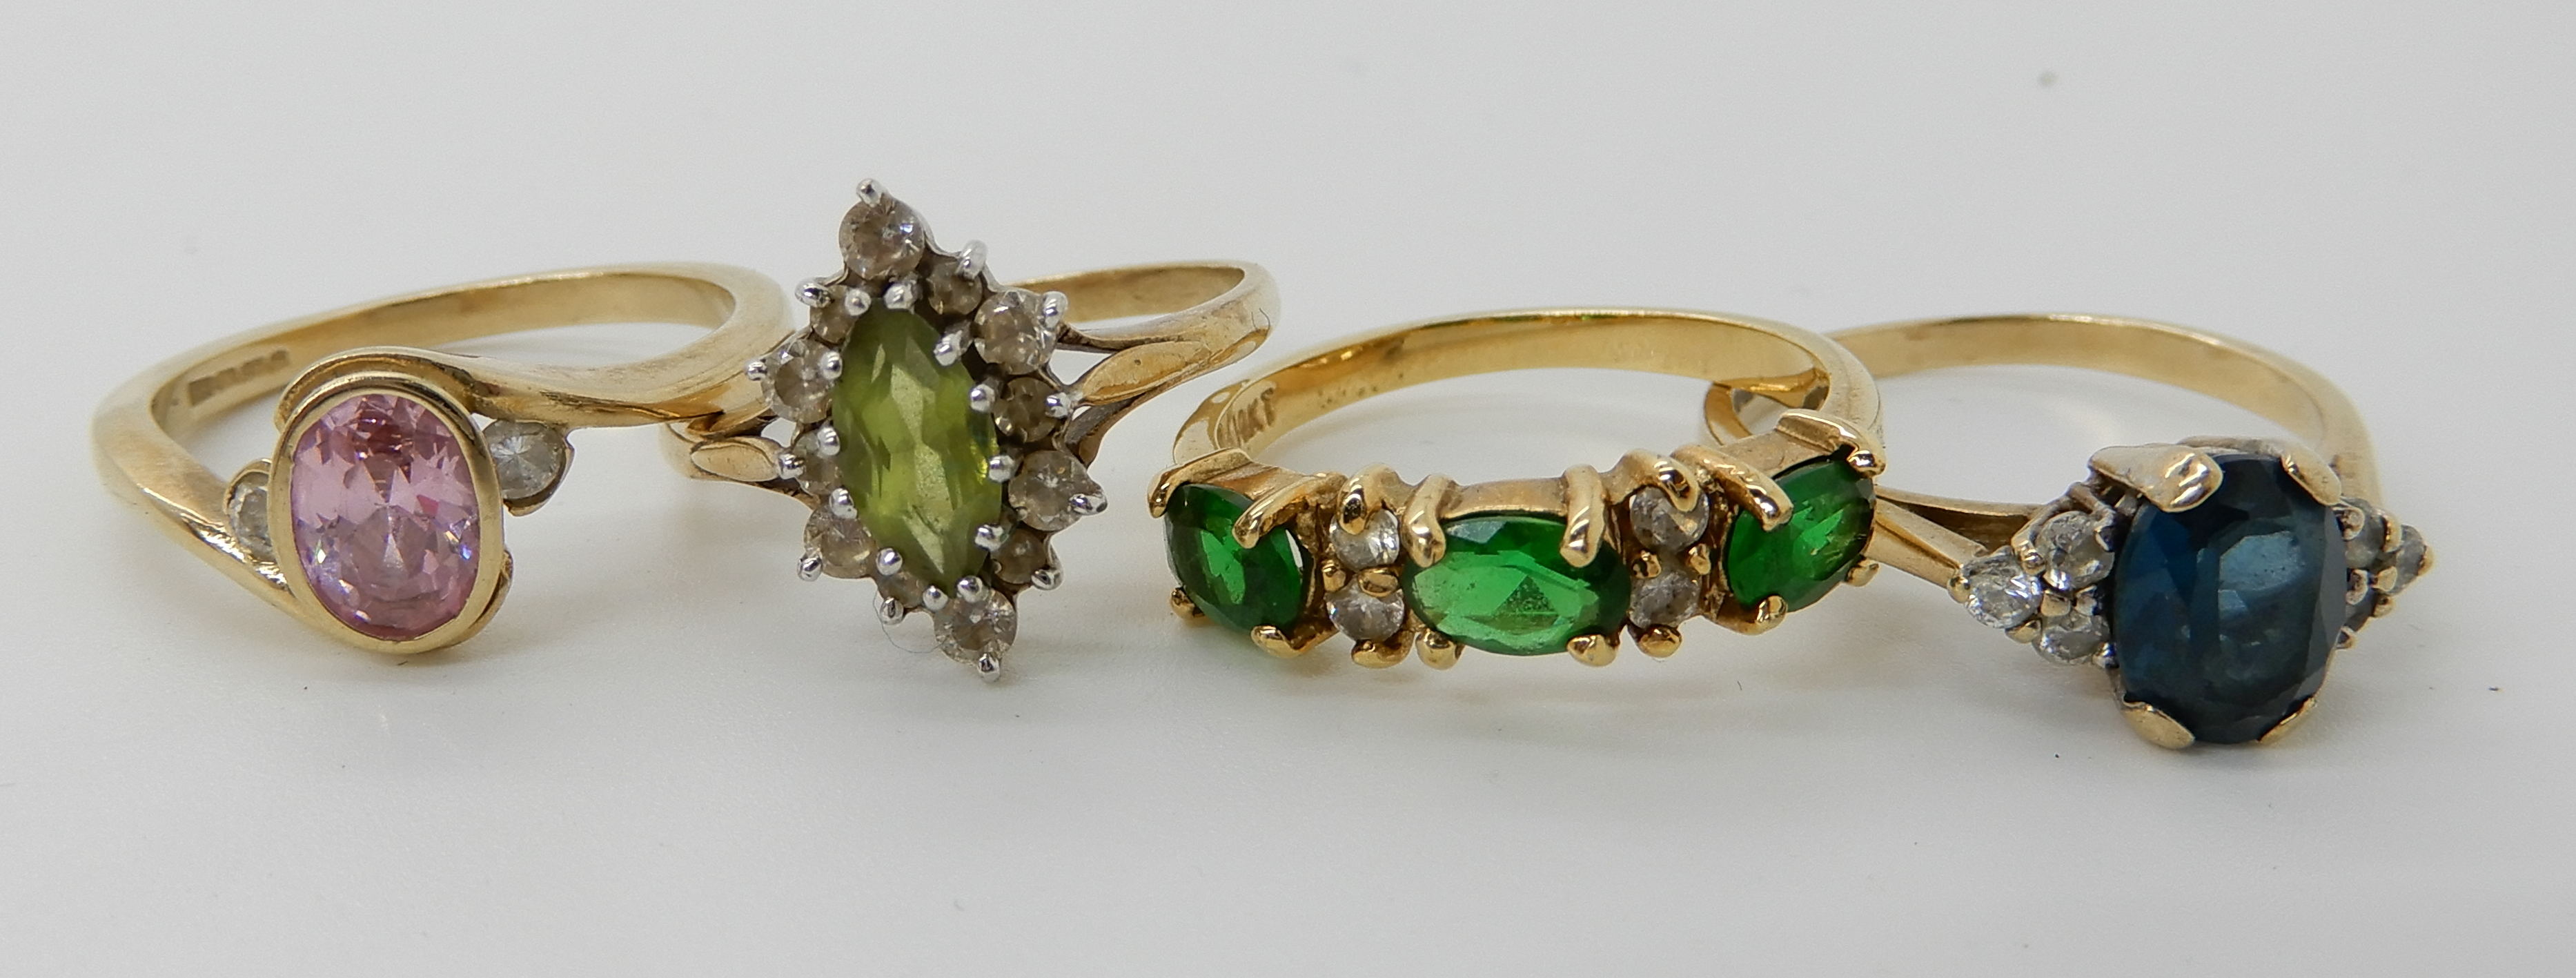 Lot 3 - A 9ct peridot and clear gem set ring size P1/2, 9ct pink and clear gem set ring size P1/2 and